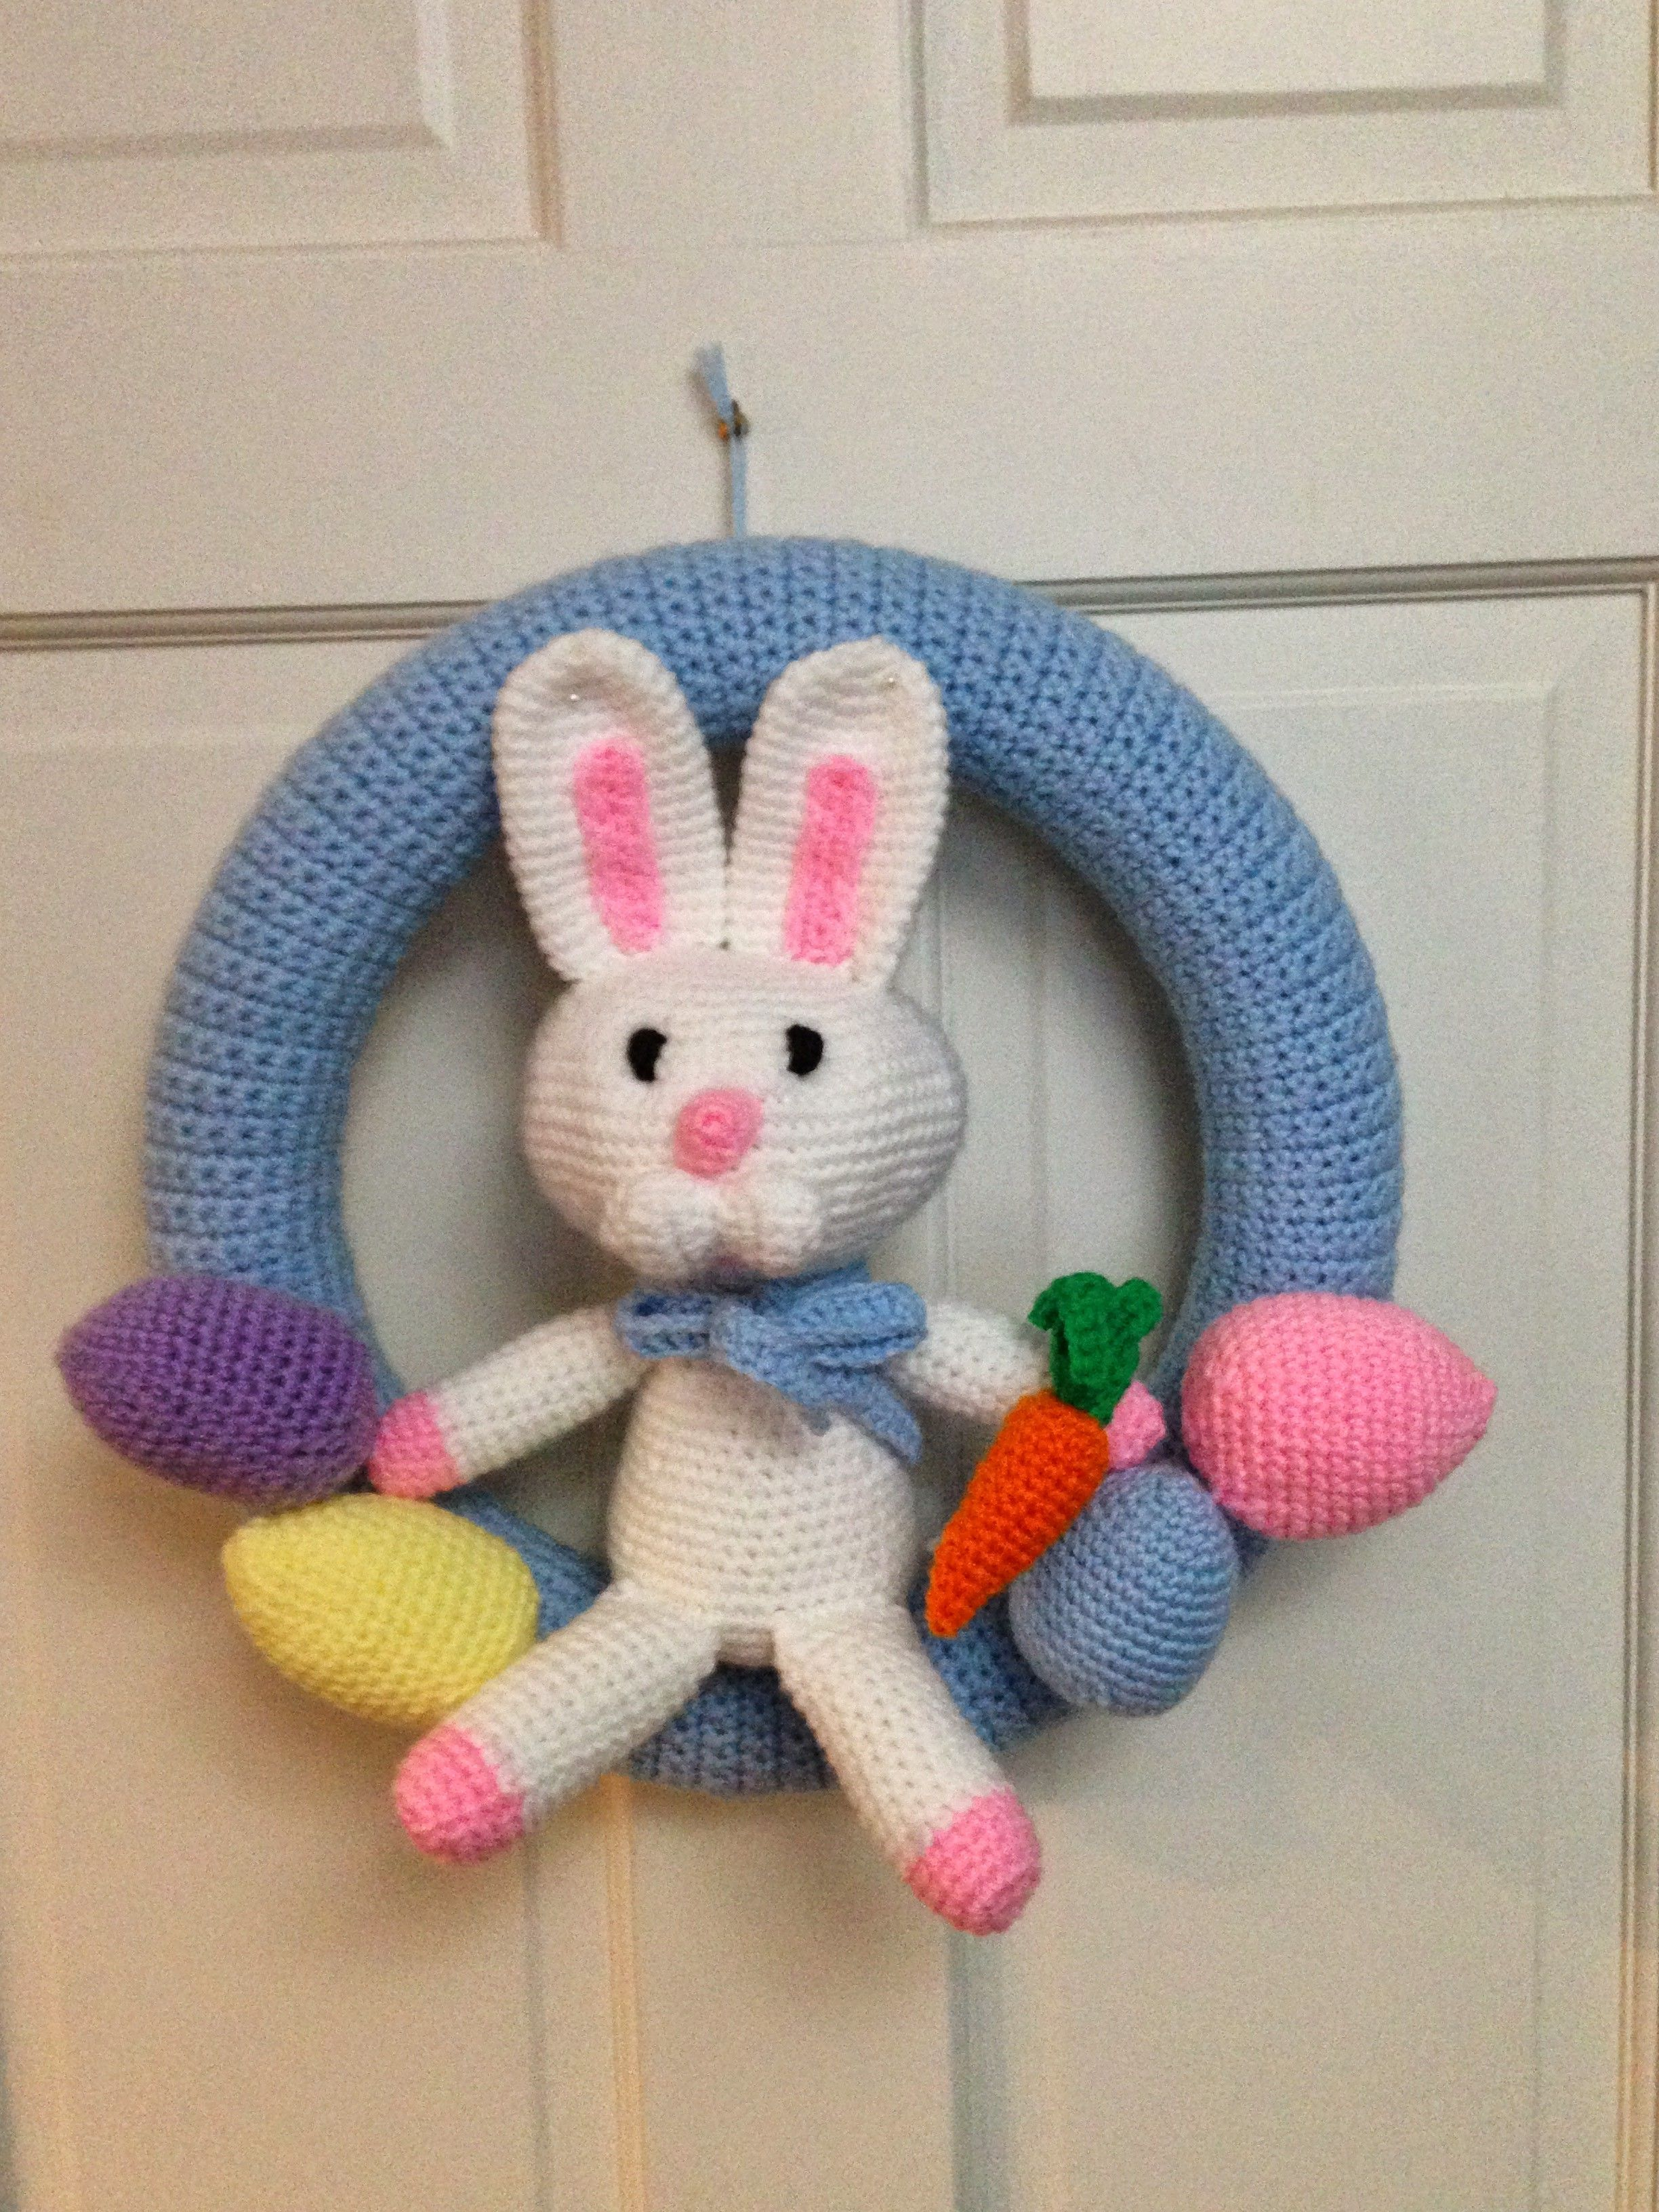 Crocheted wreath bunny pattern free from httpyarnspirations crocheted wreath bunny pattern free from httpyarnspirations bankloansurffo Choice Image